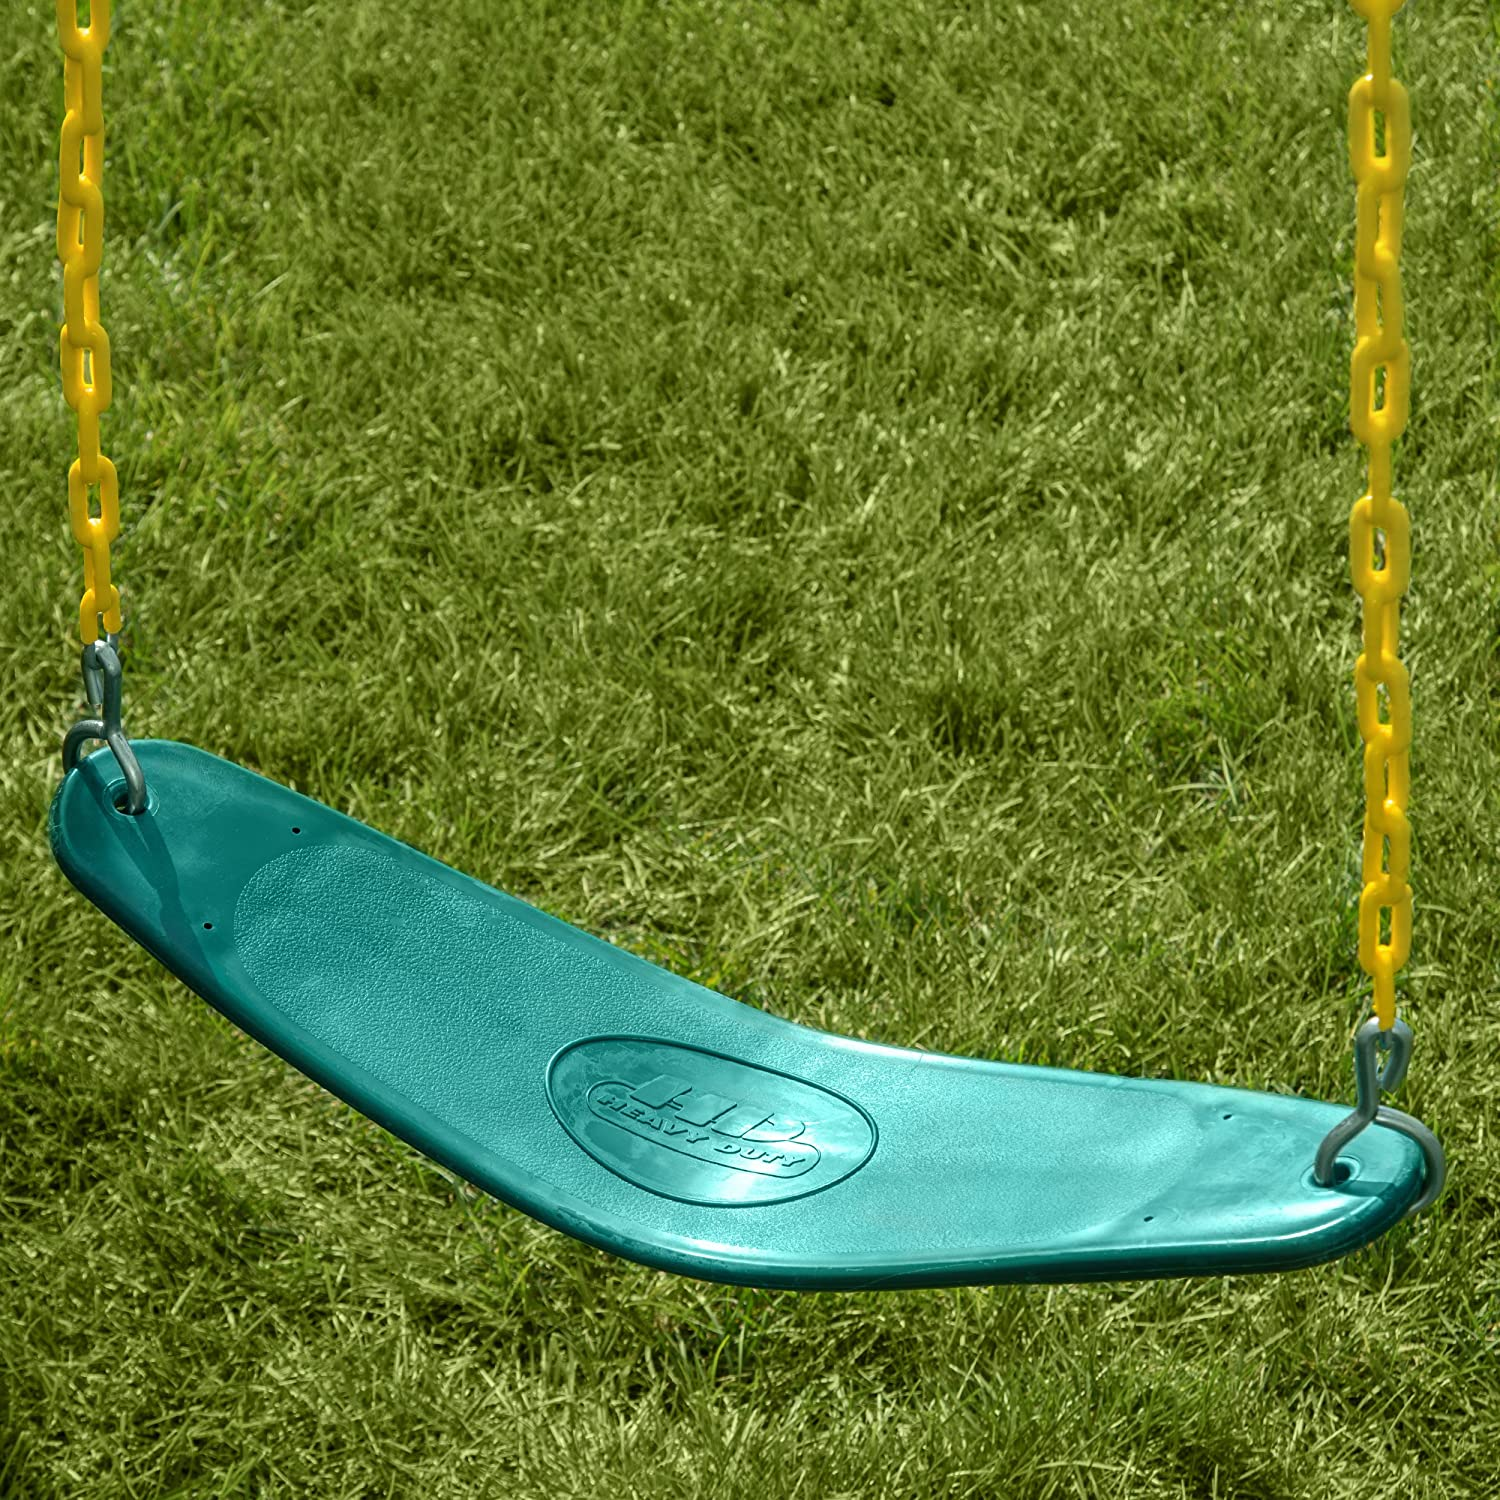 Swing-N-Slide WS 5106 Two Extreme Duty Green Swing Seats with a Comfy-N-Secure Toddler Coaster Swing Refresher Bundle Green